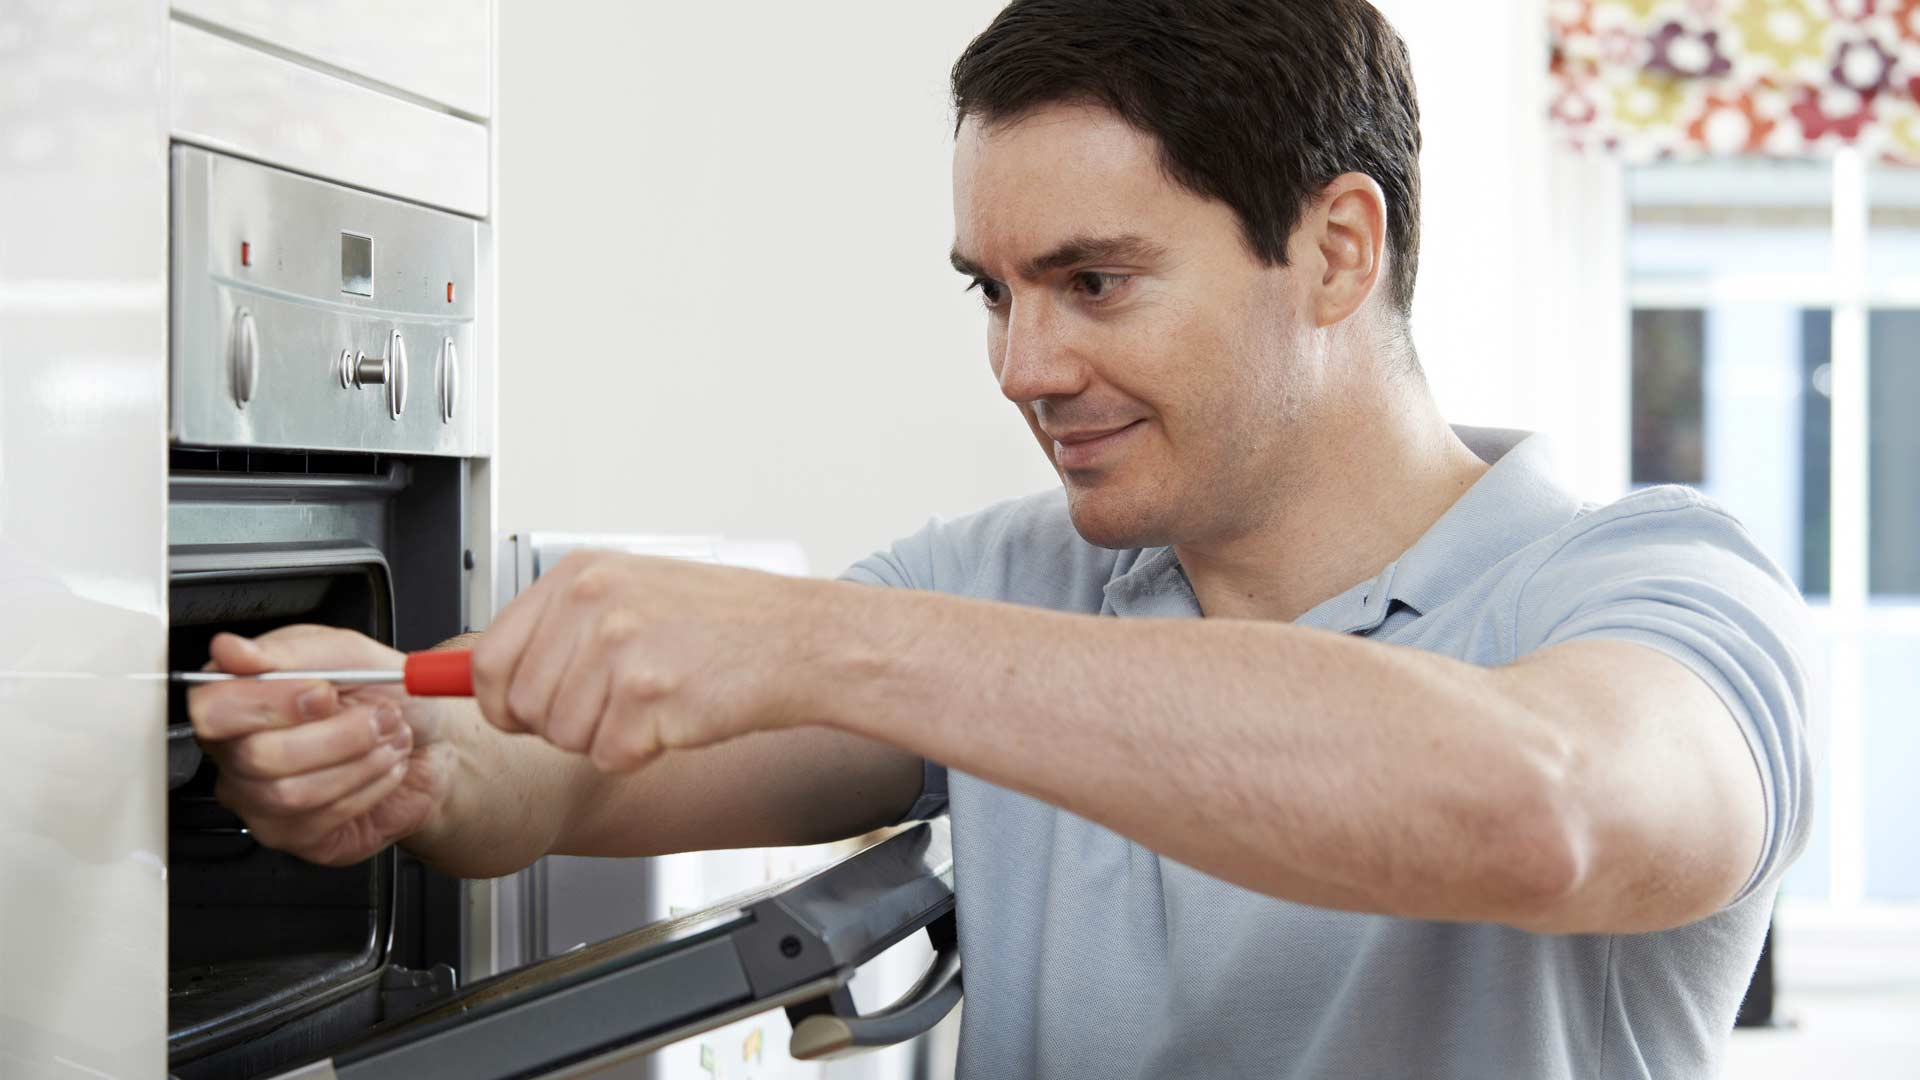 Oven Repair in Palos Verdes. Tel: (800) 530-7906